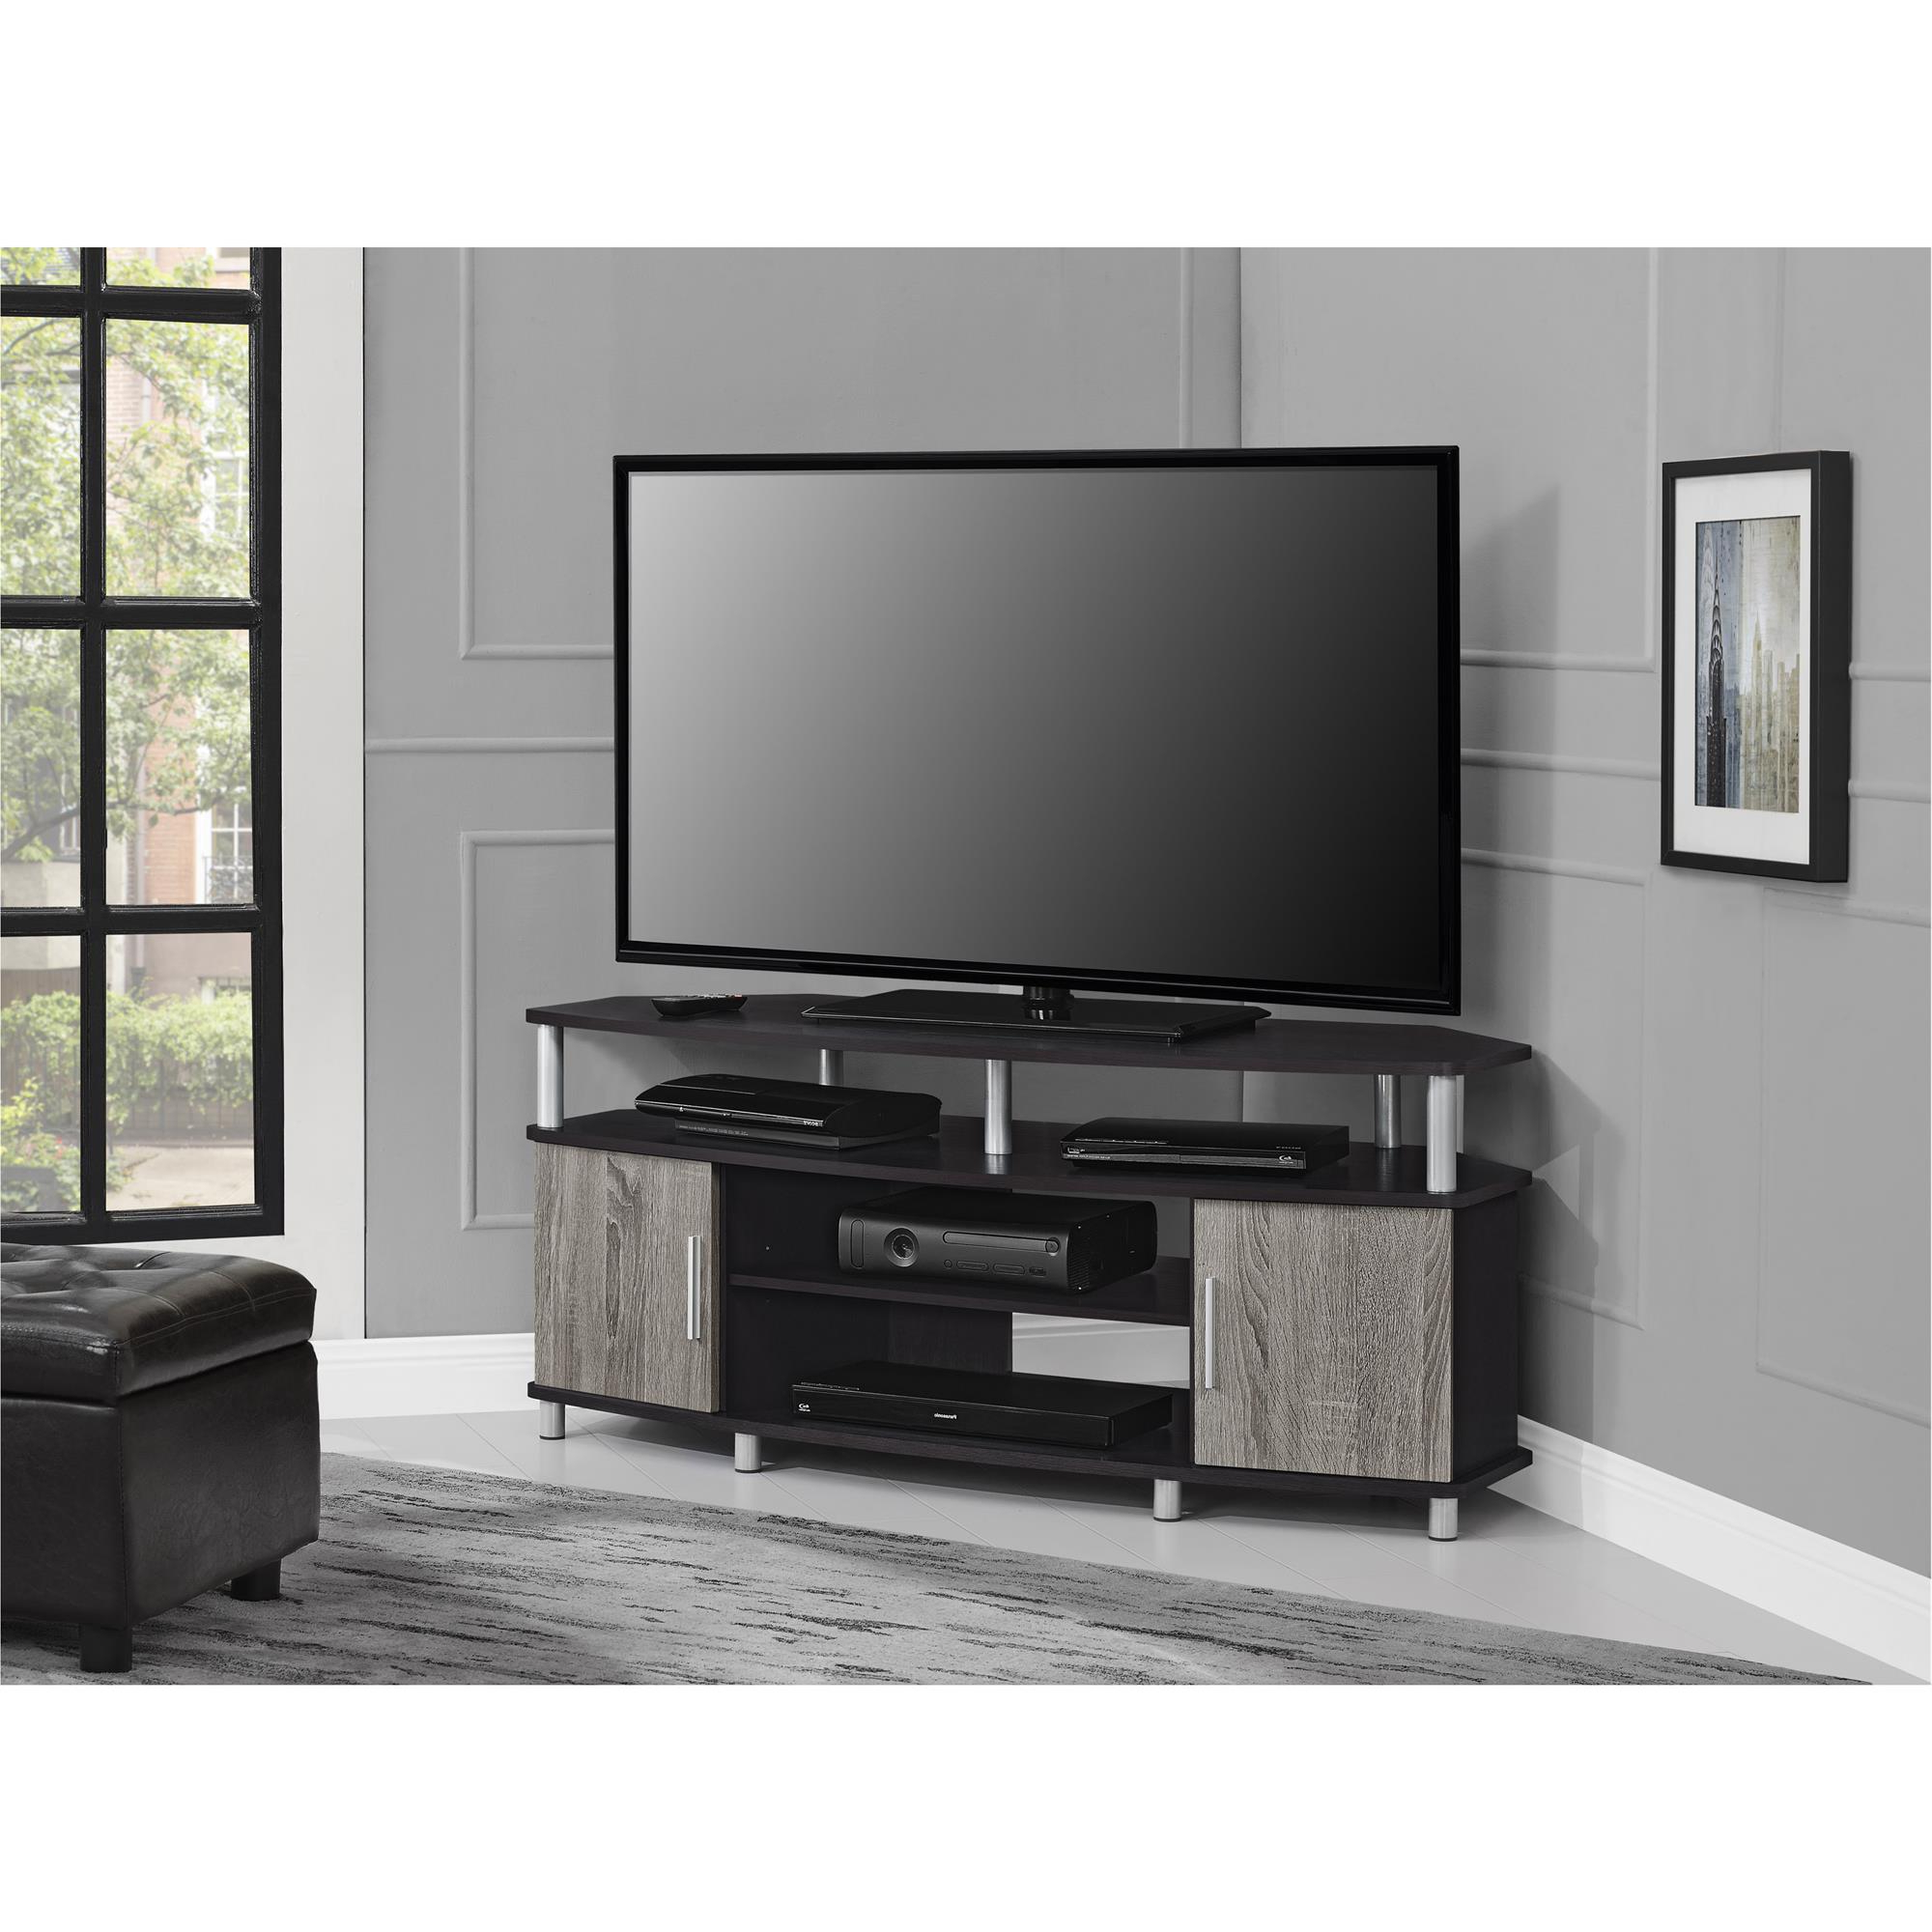 "Corner Oak Tv Stands For Flat Screen Throughout Most Current Ameriwood Home Carson Corner Tv Stand For Tvs Up To 50"" Wide, Black/cherry (View 6 of 20)"